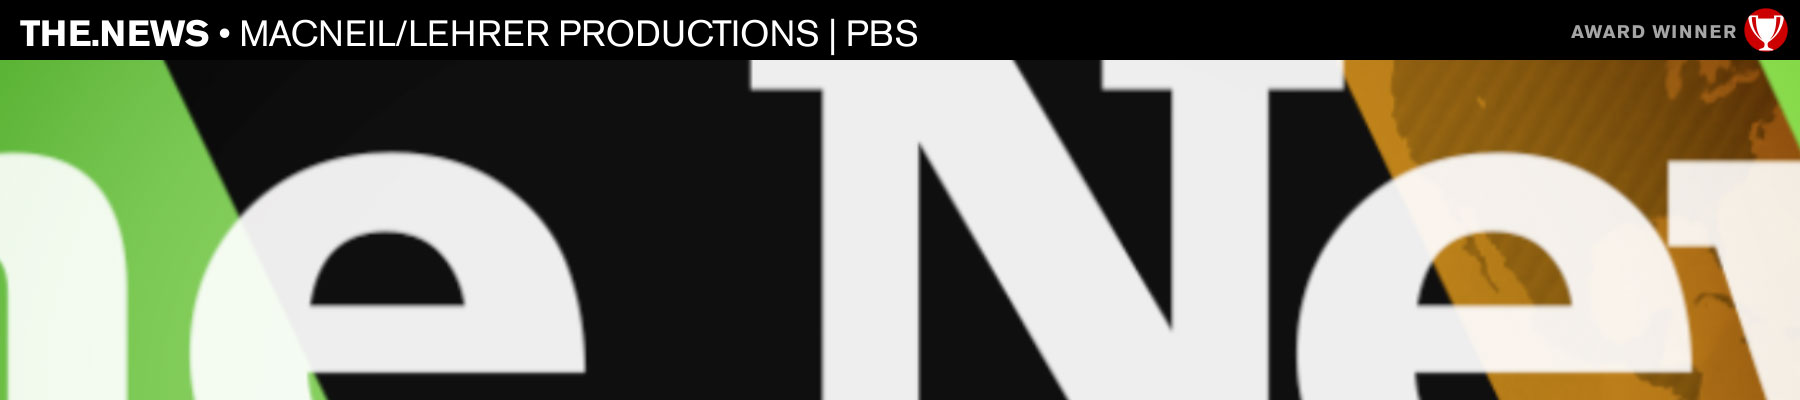 The.News • MacNeil/Lehrer Productions | PBS